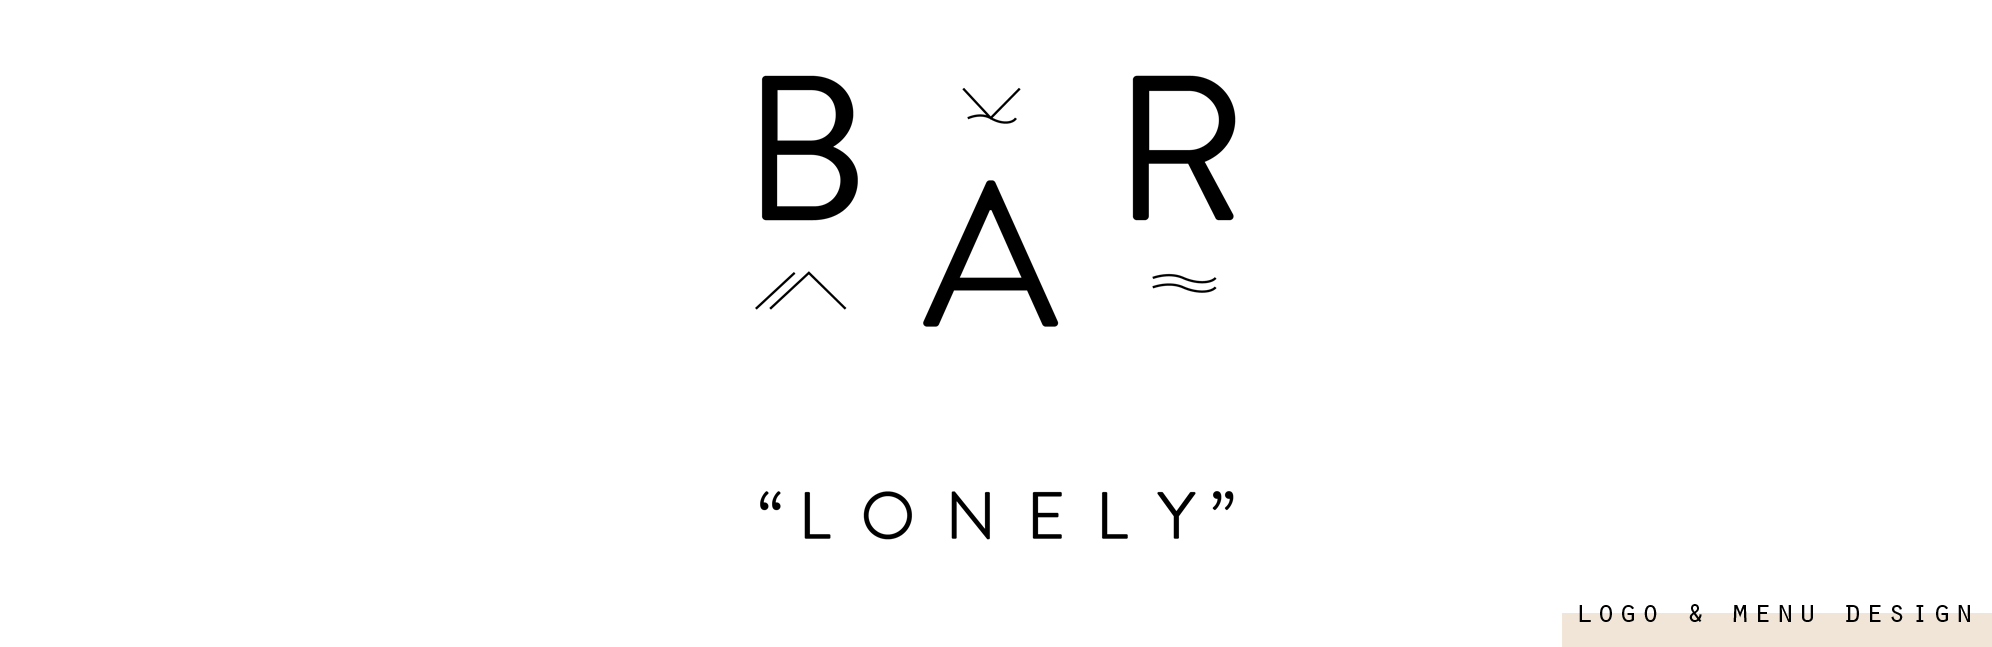 barlonely.png